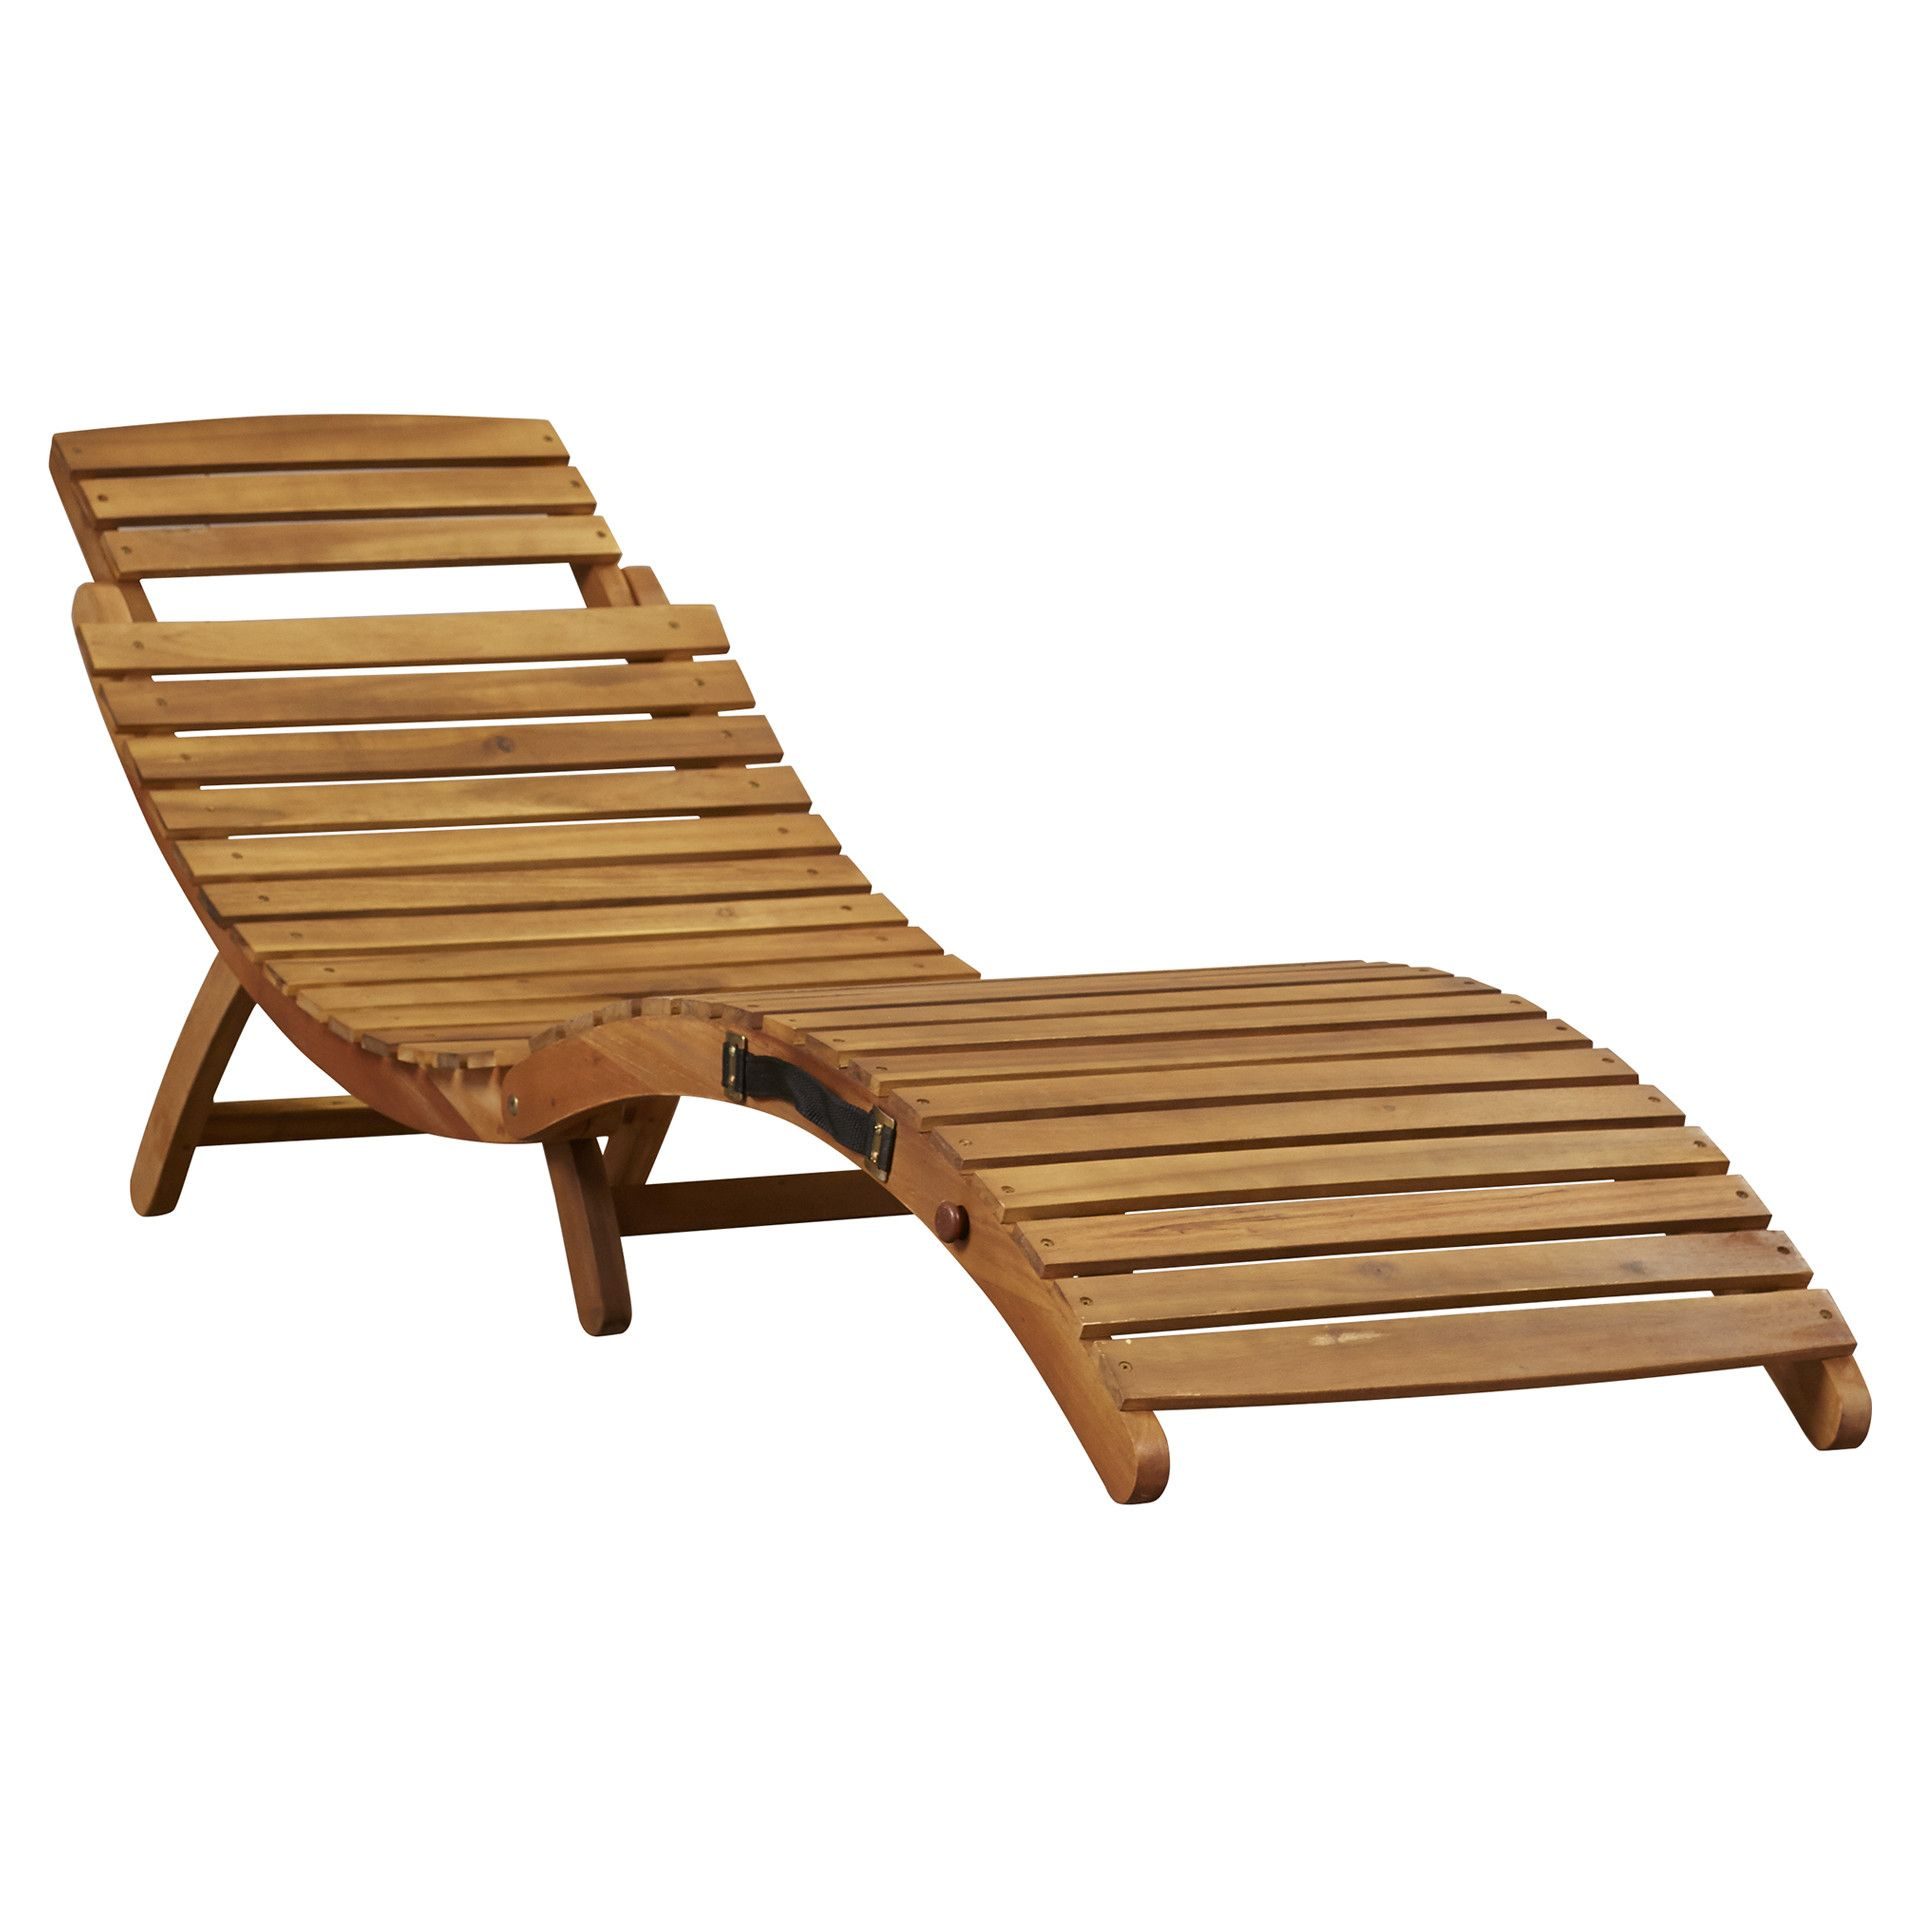 Bank Chaise Lounge Bay Isle Home Wood Outdoor Chaise Lounge 80 Roofdeck